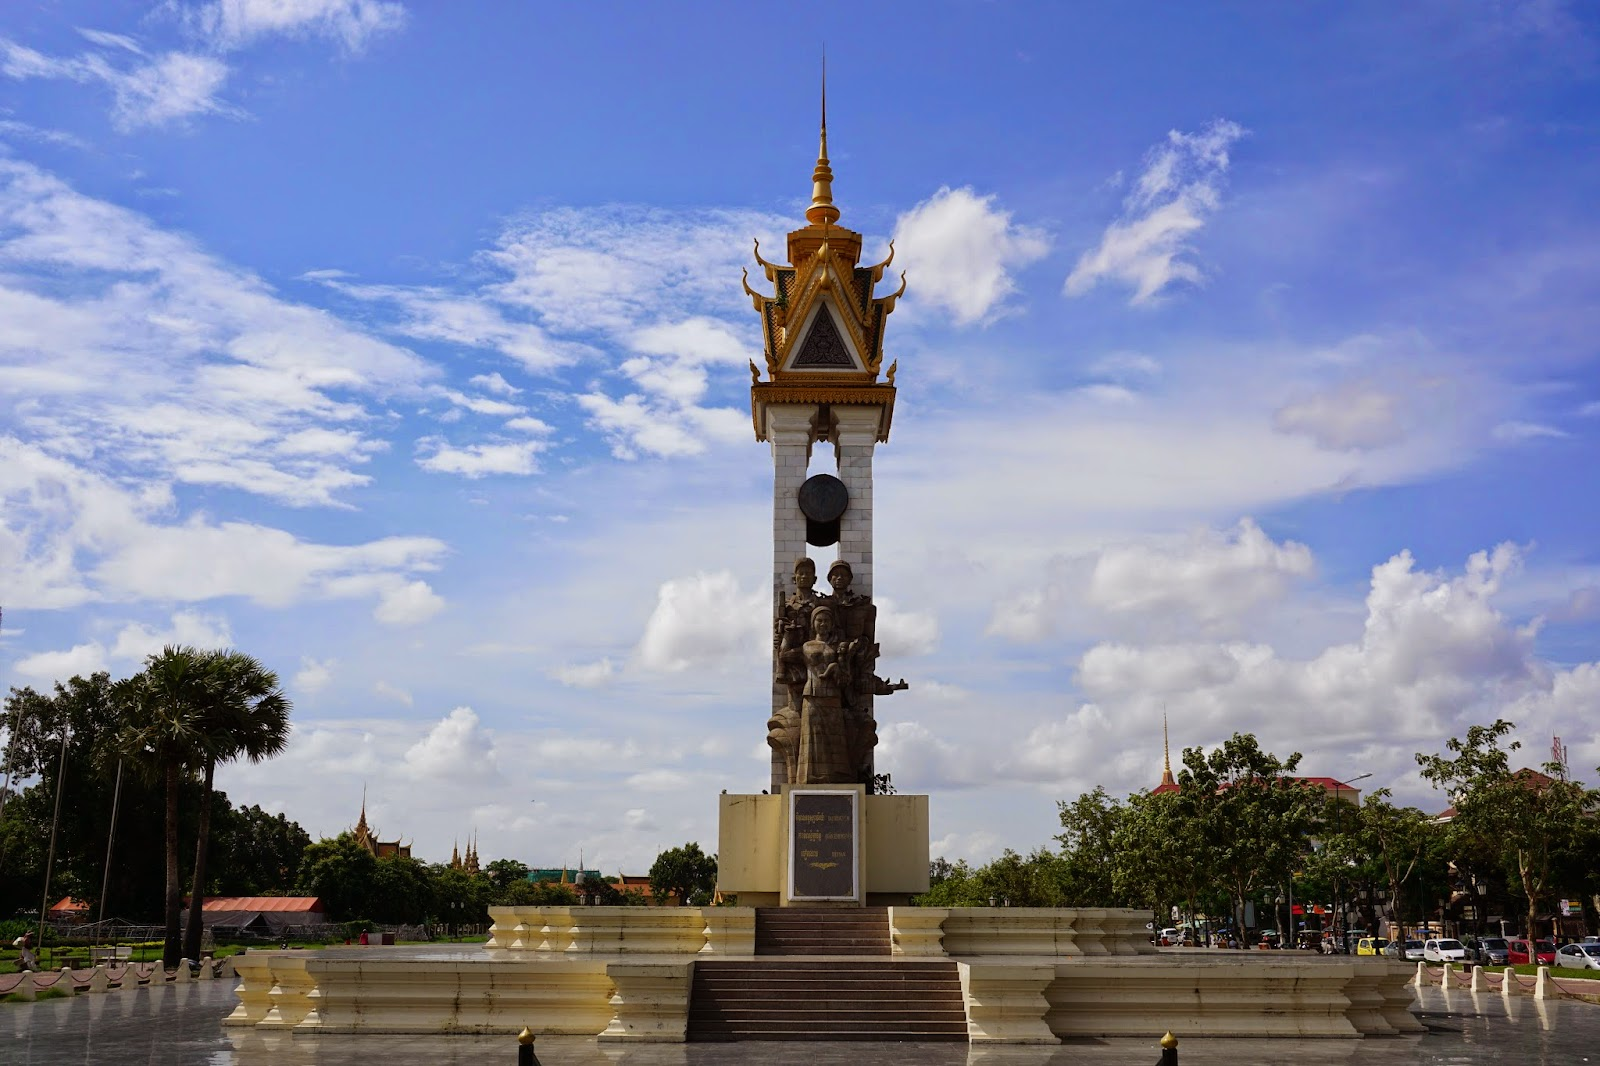 Cambodia-Vietnam Friendship Monument in Wat Botum park